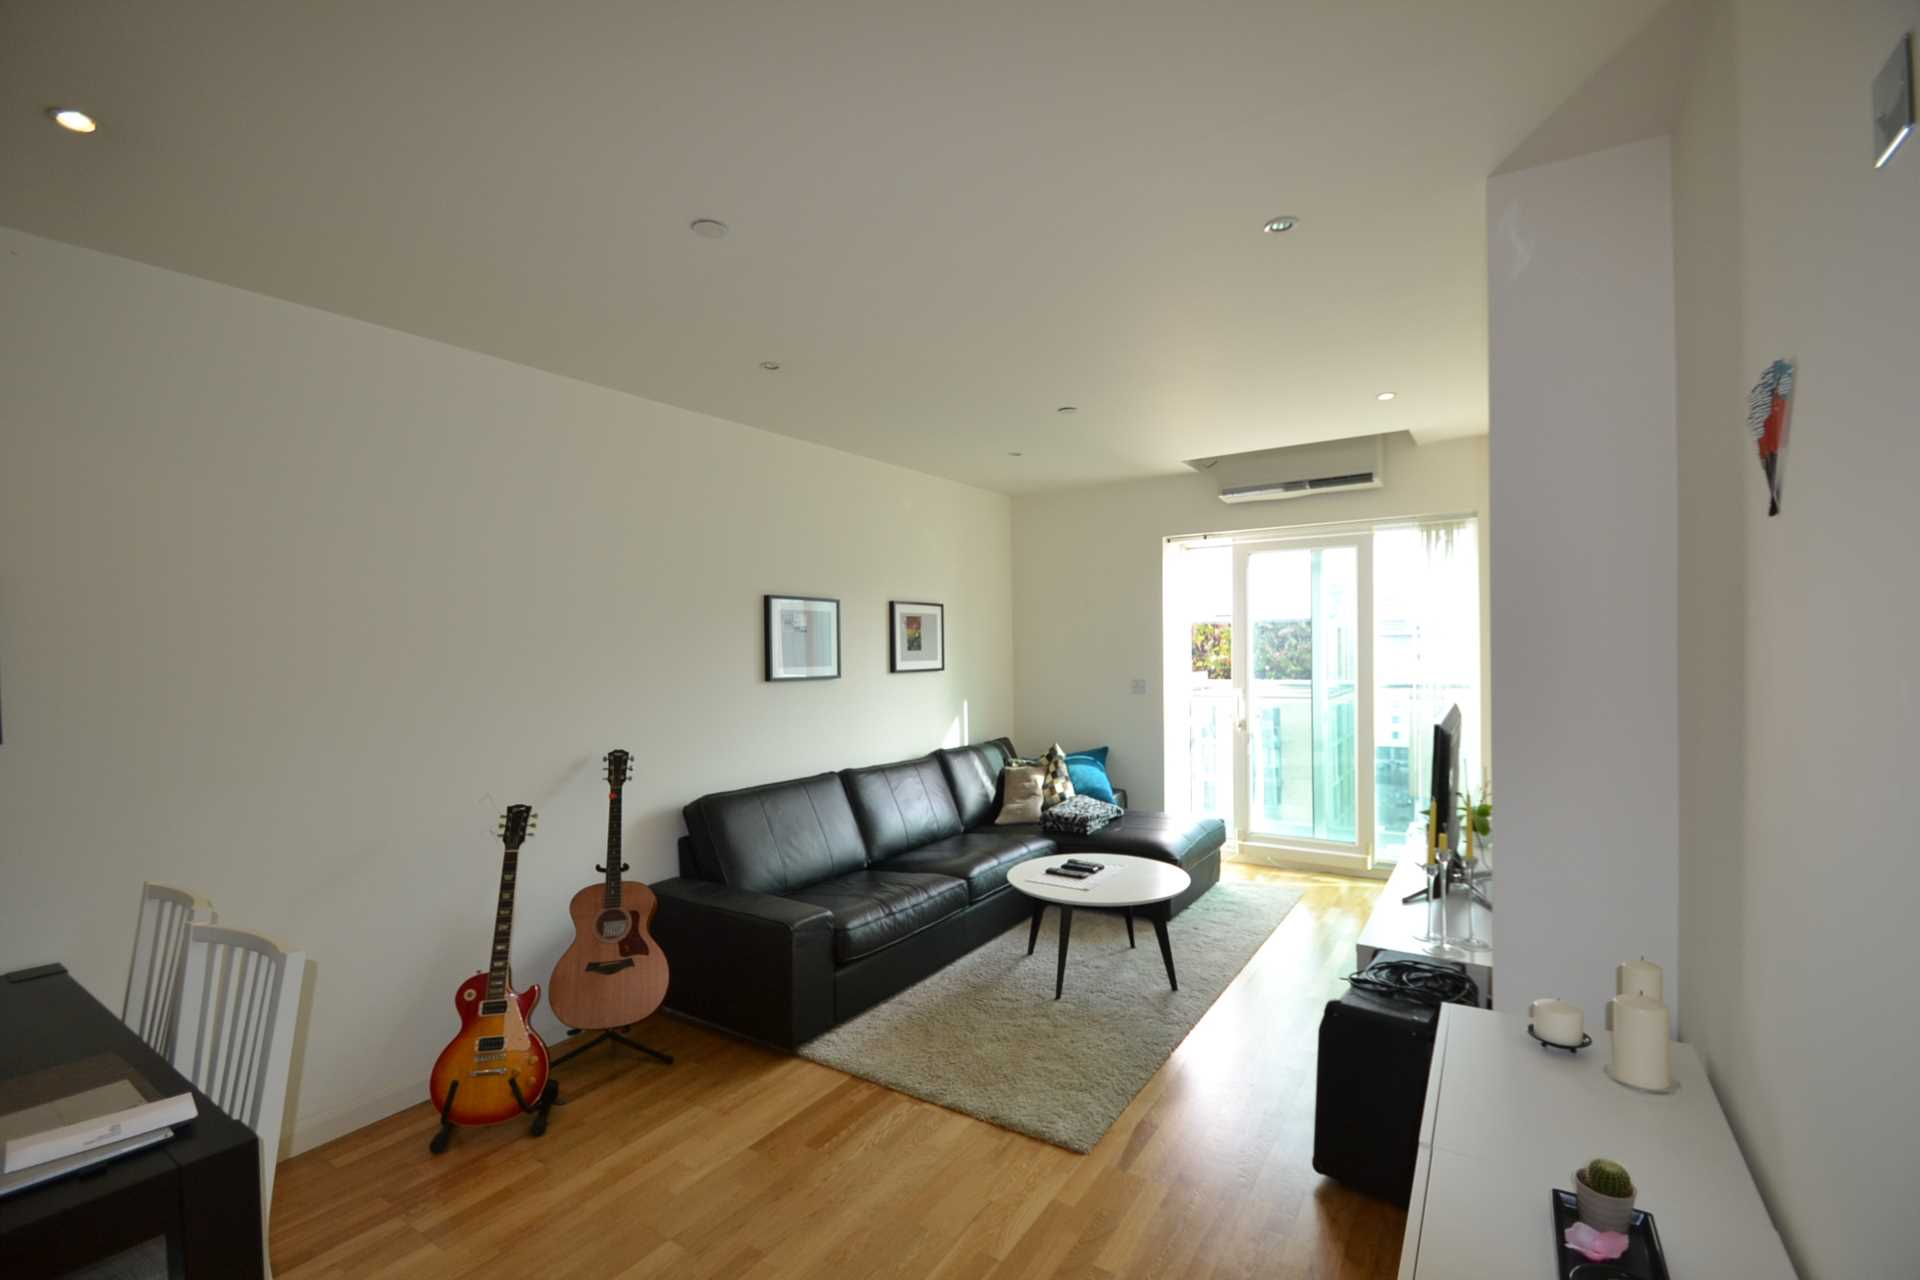 Rent House London Ealing Broadway